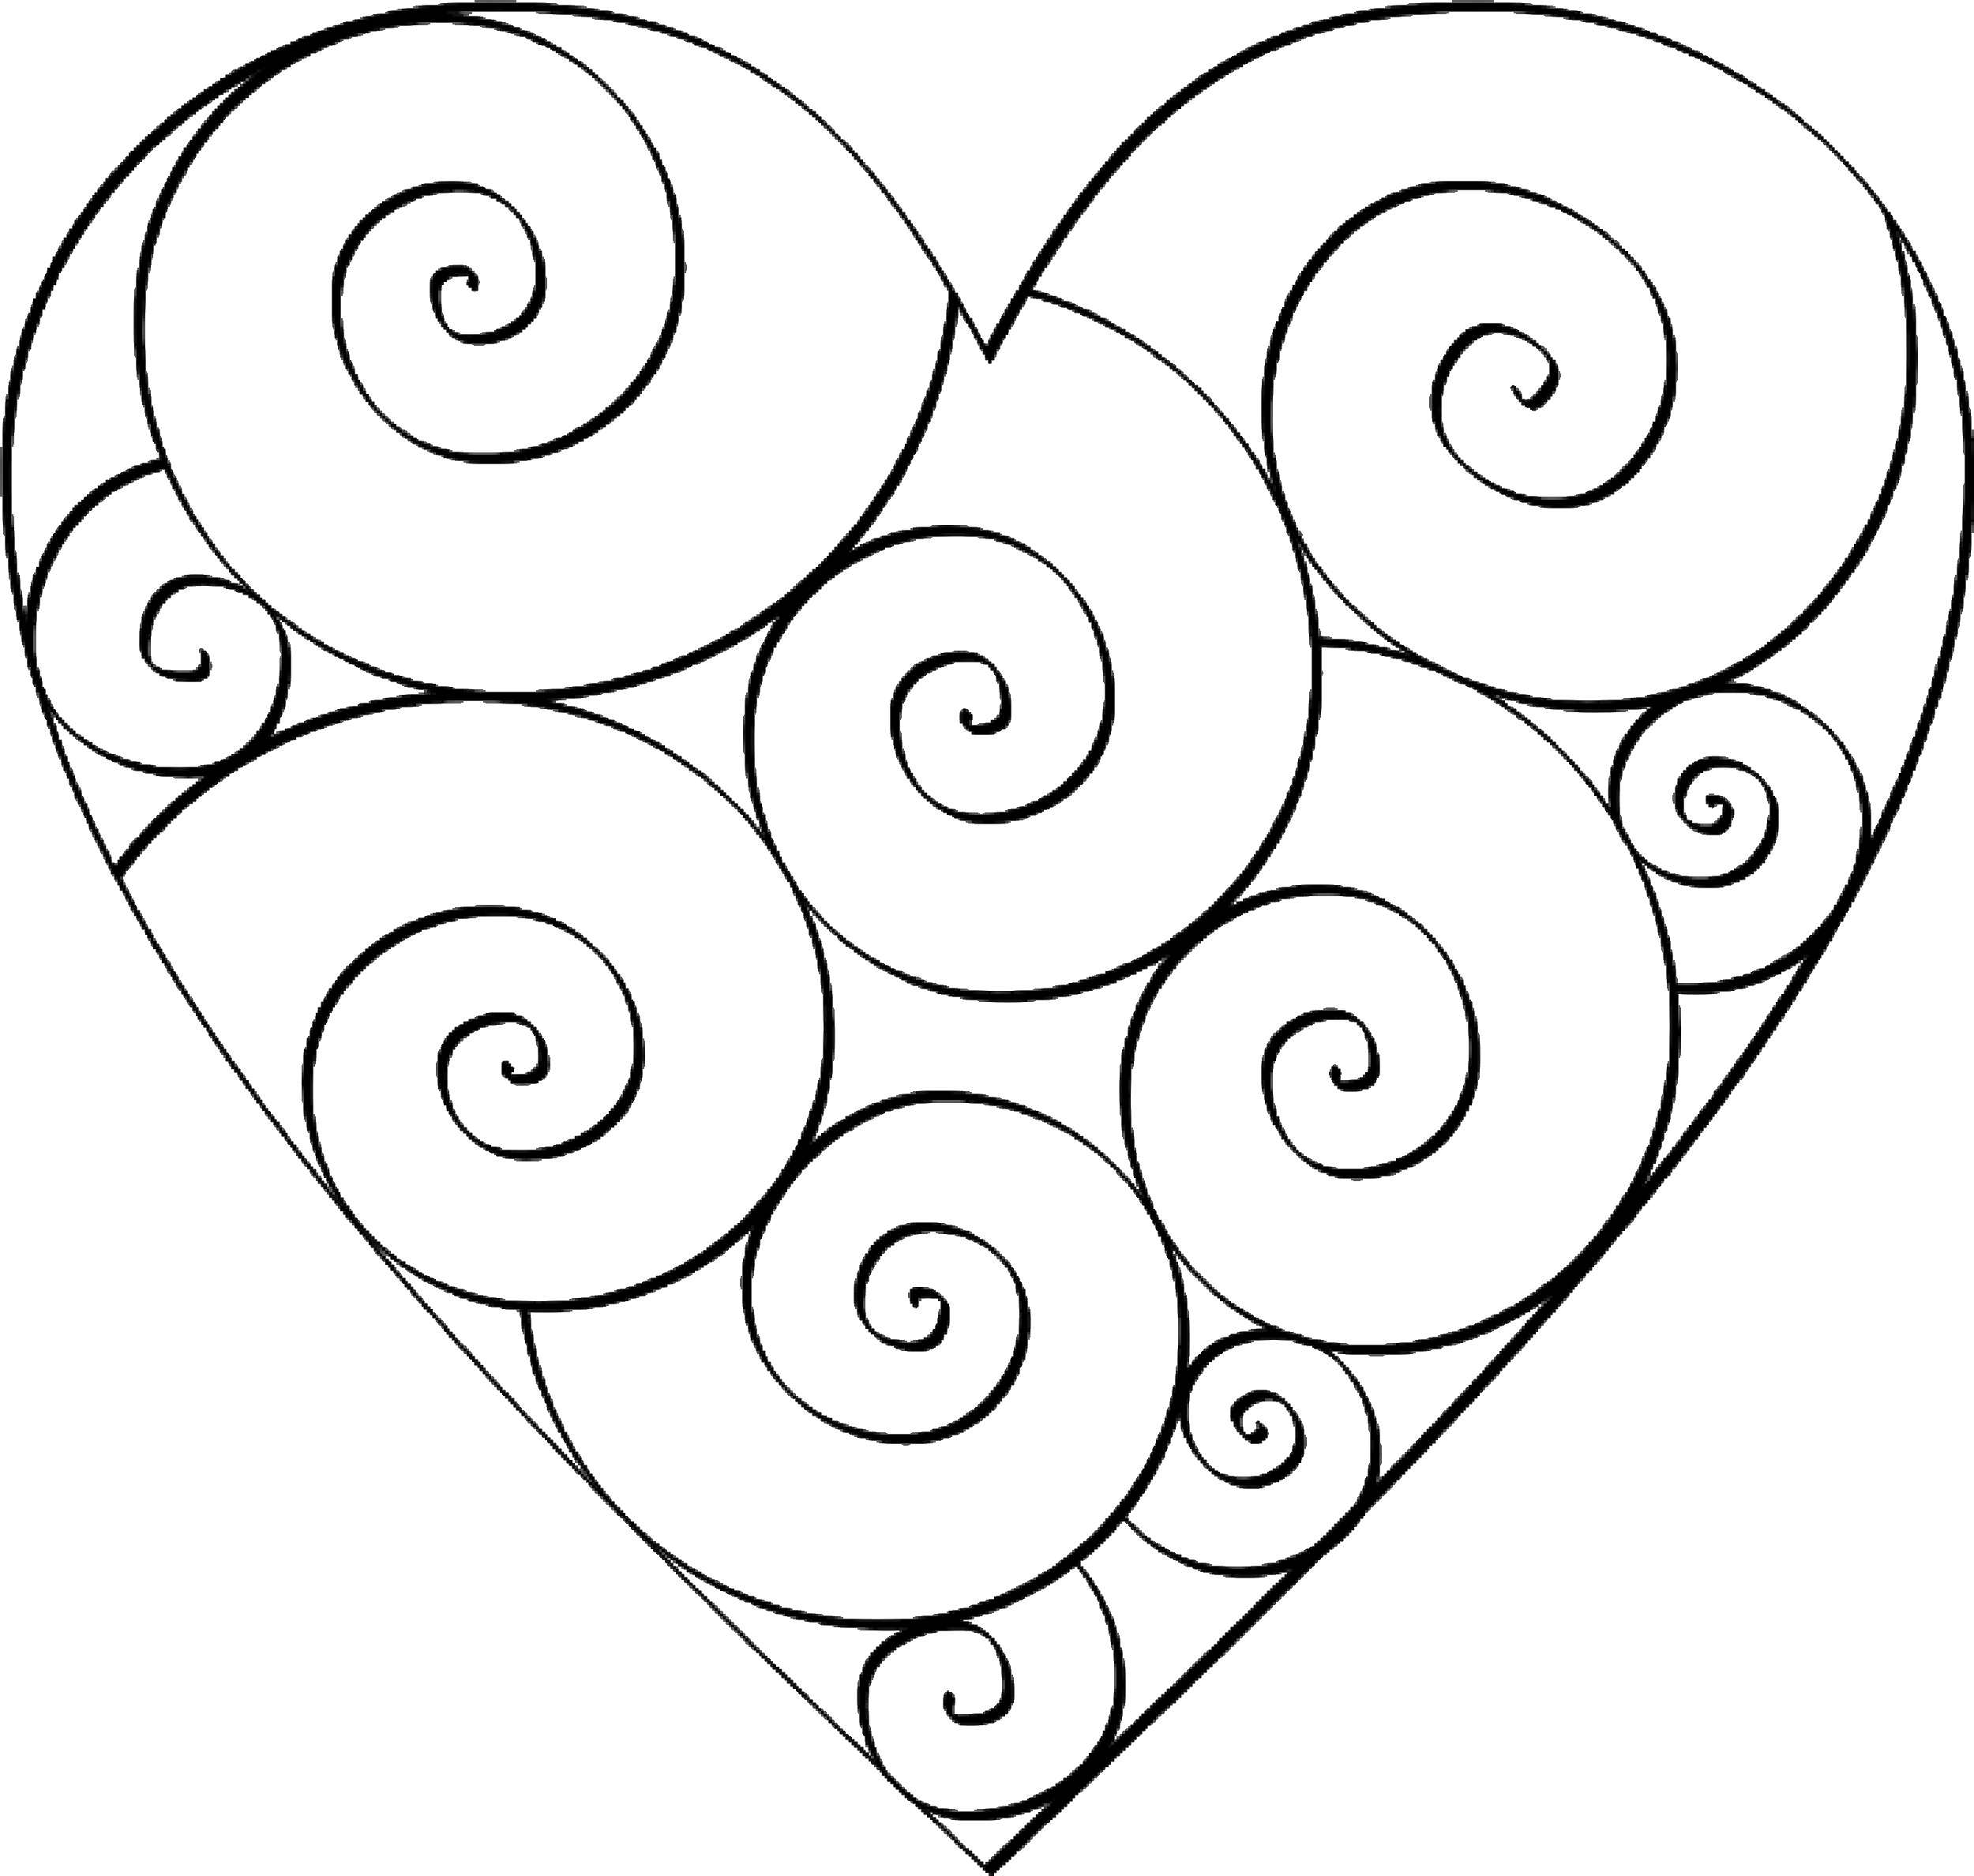 coloring pictures of hearts get this easy hearts coloring pages for preschoolers 8ps18 hearts of coloring pictures